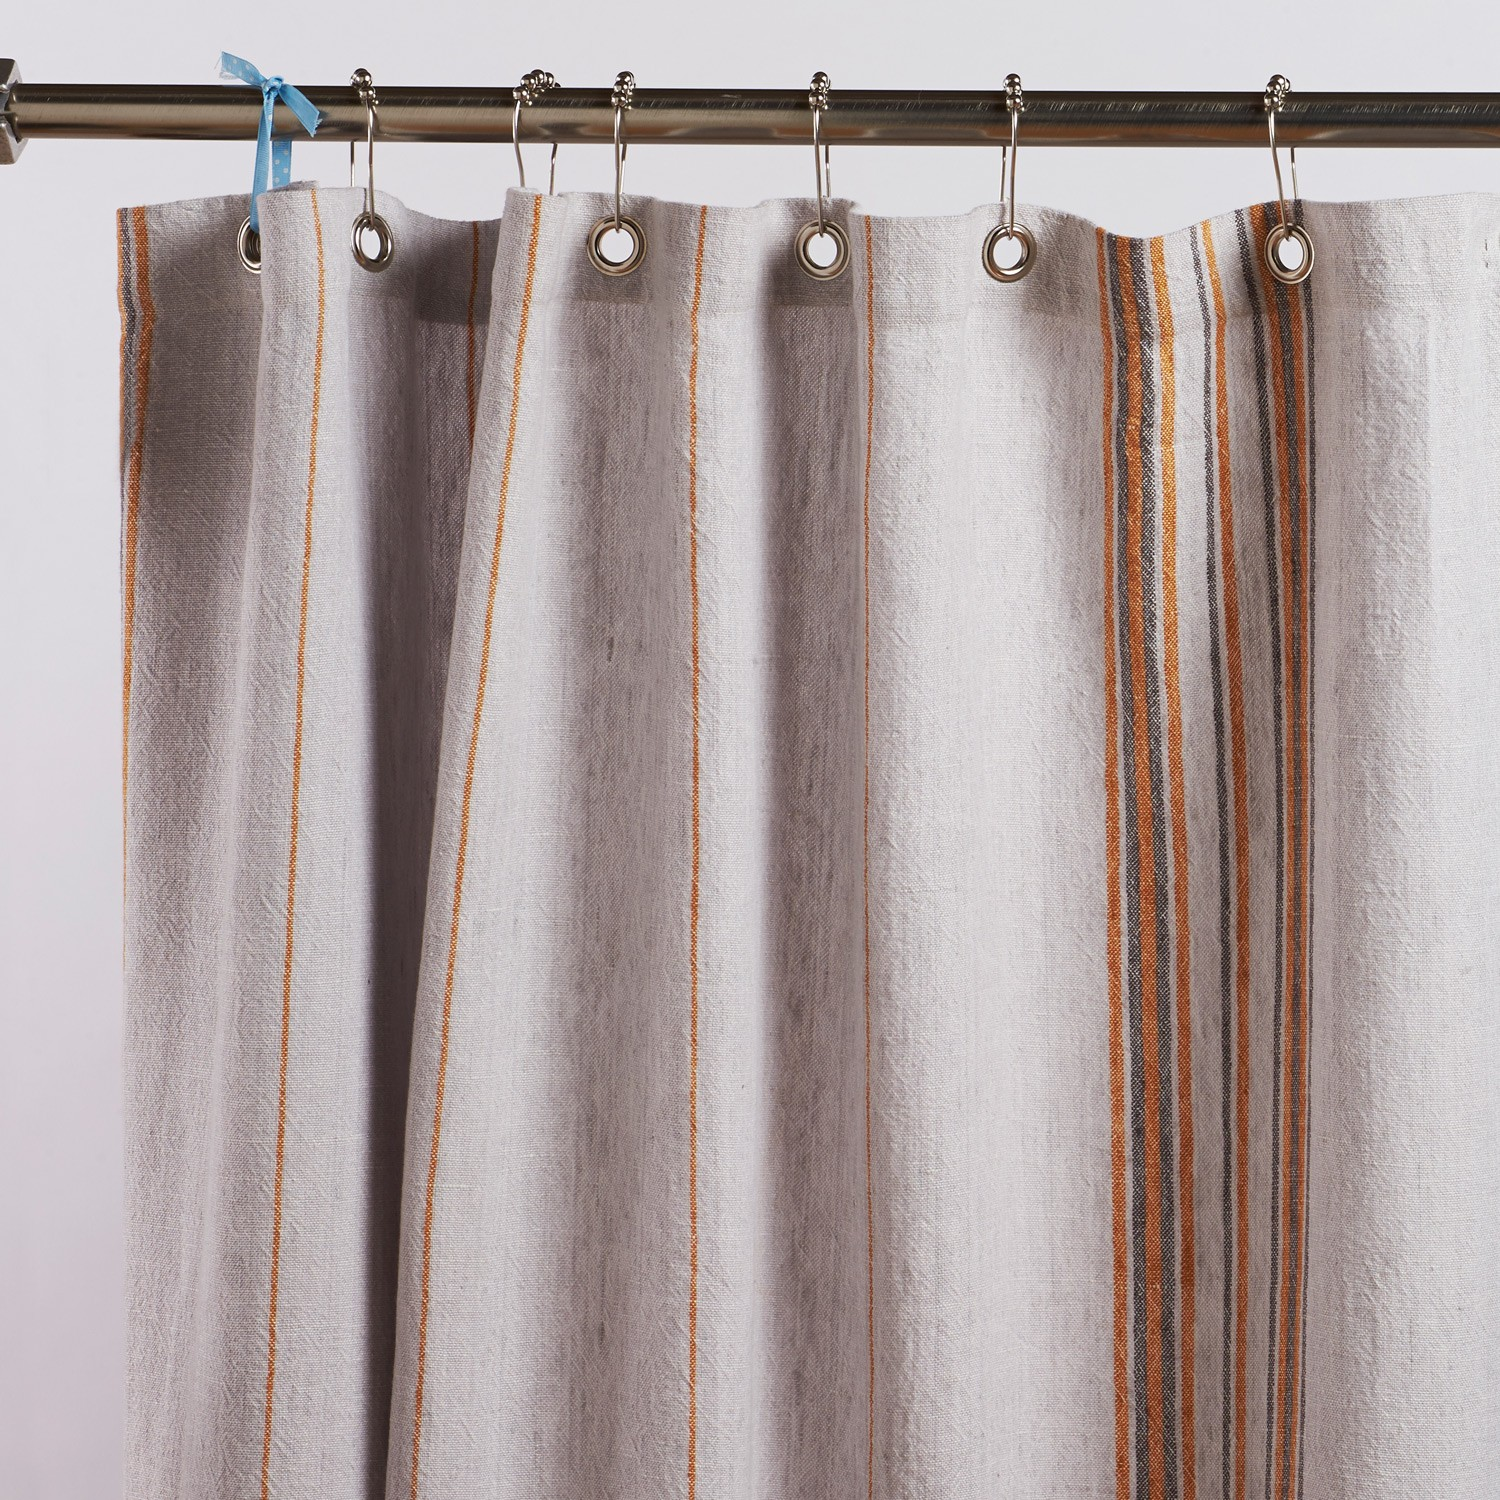 Shower Curtain Rod  | Ylighting